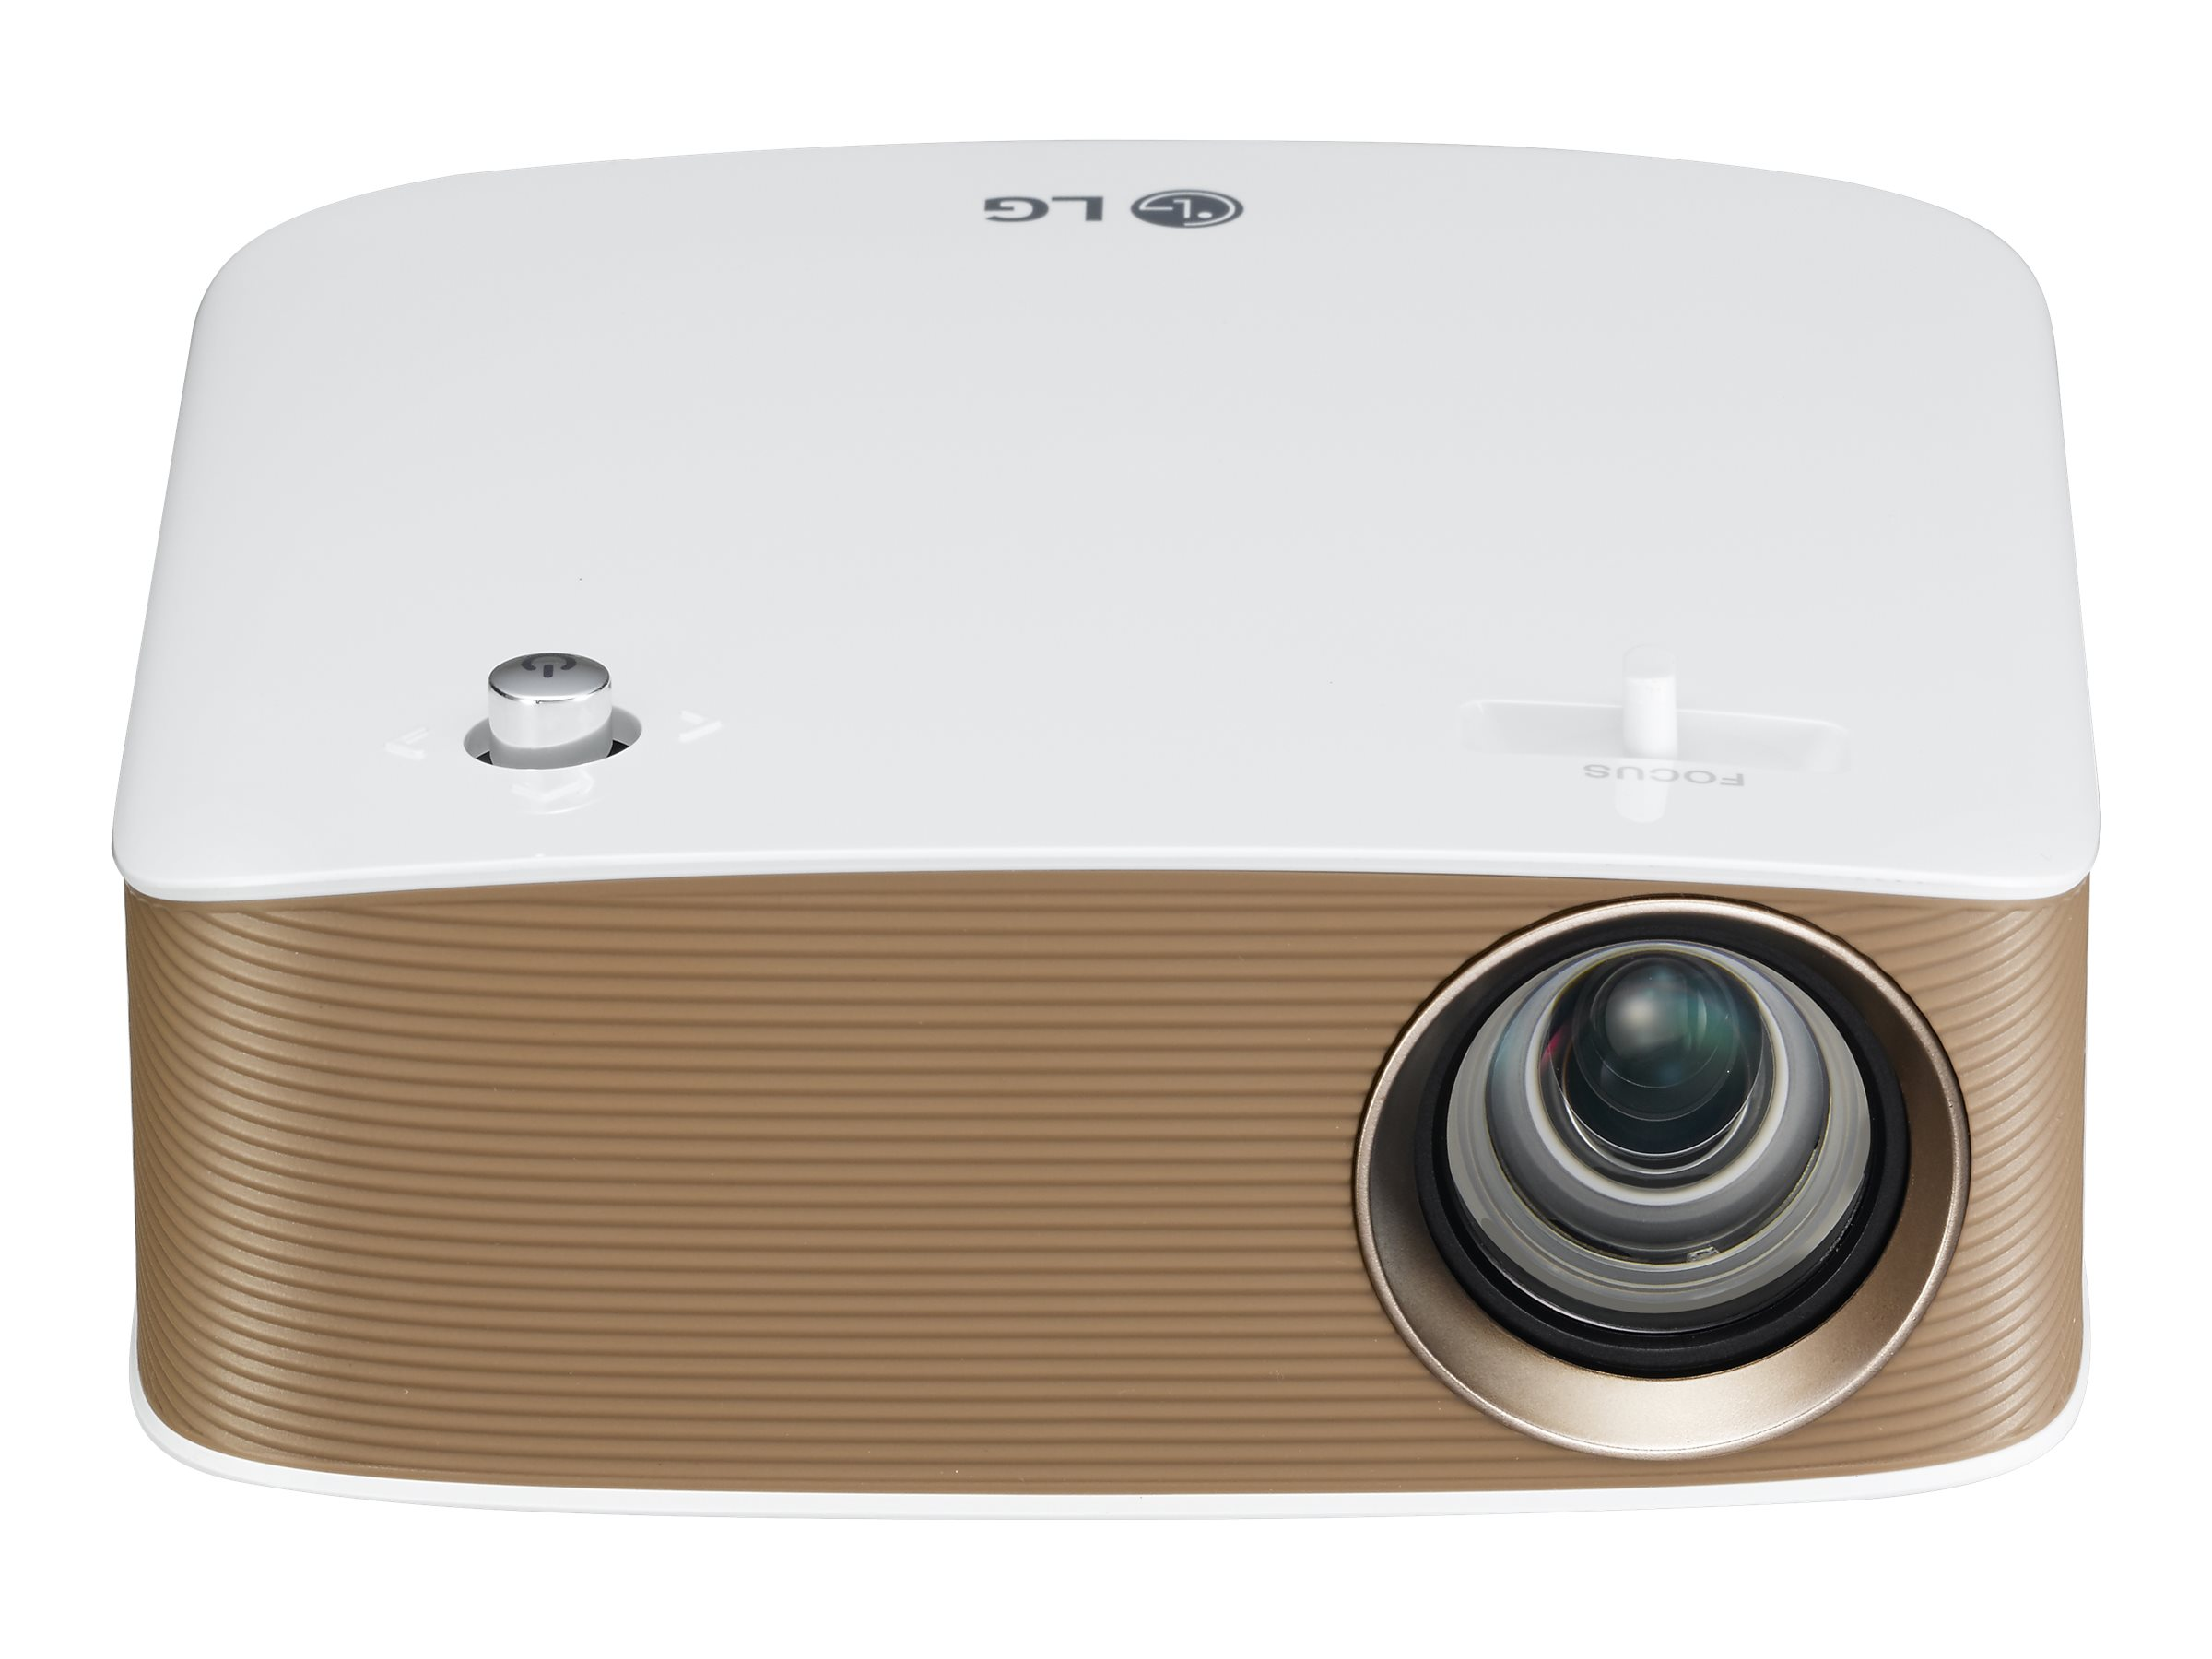 Image for Lg Hd Led Projector With Embedded Battery And Screen, 130 Lumens from Circuit City